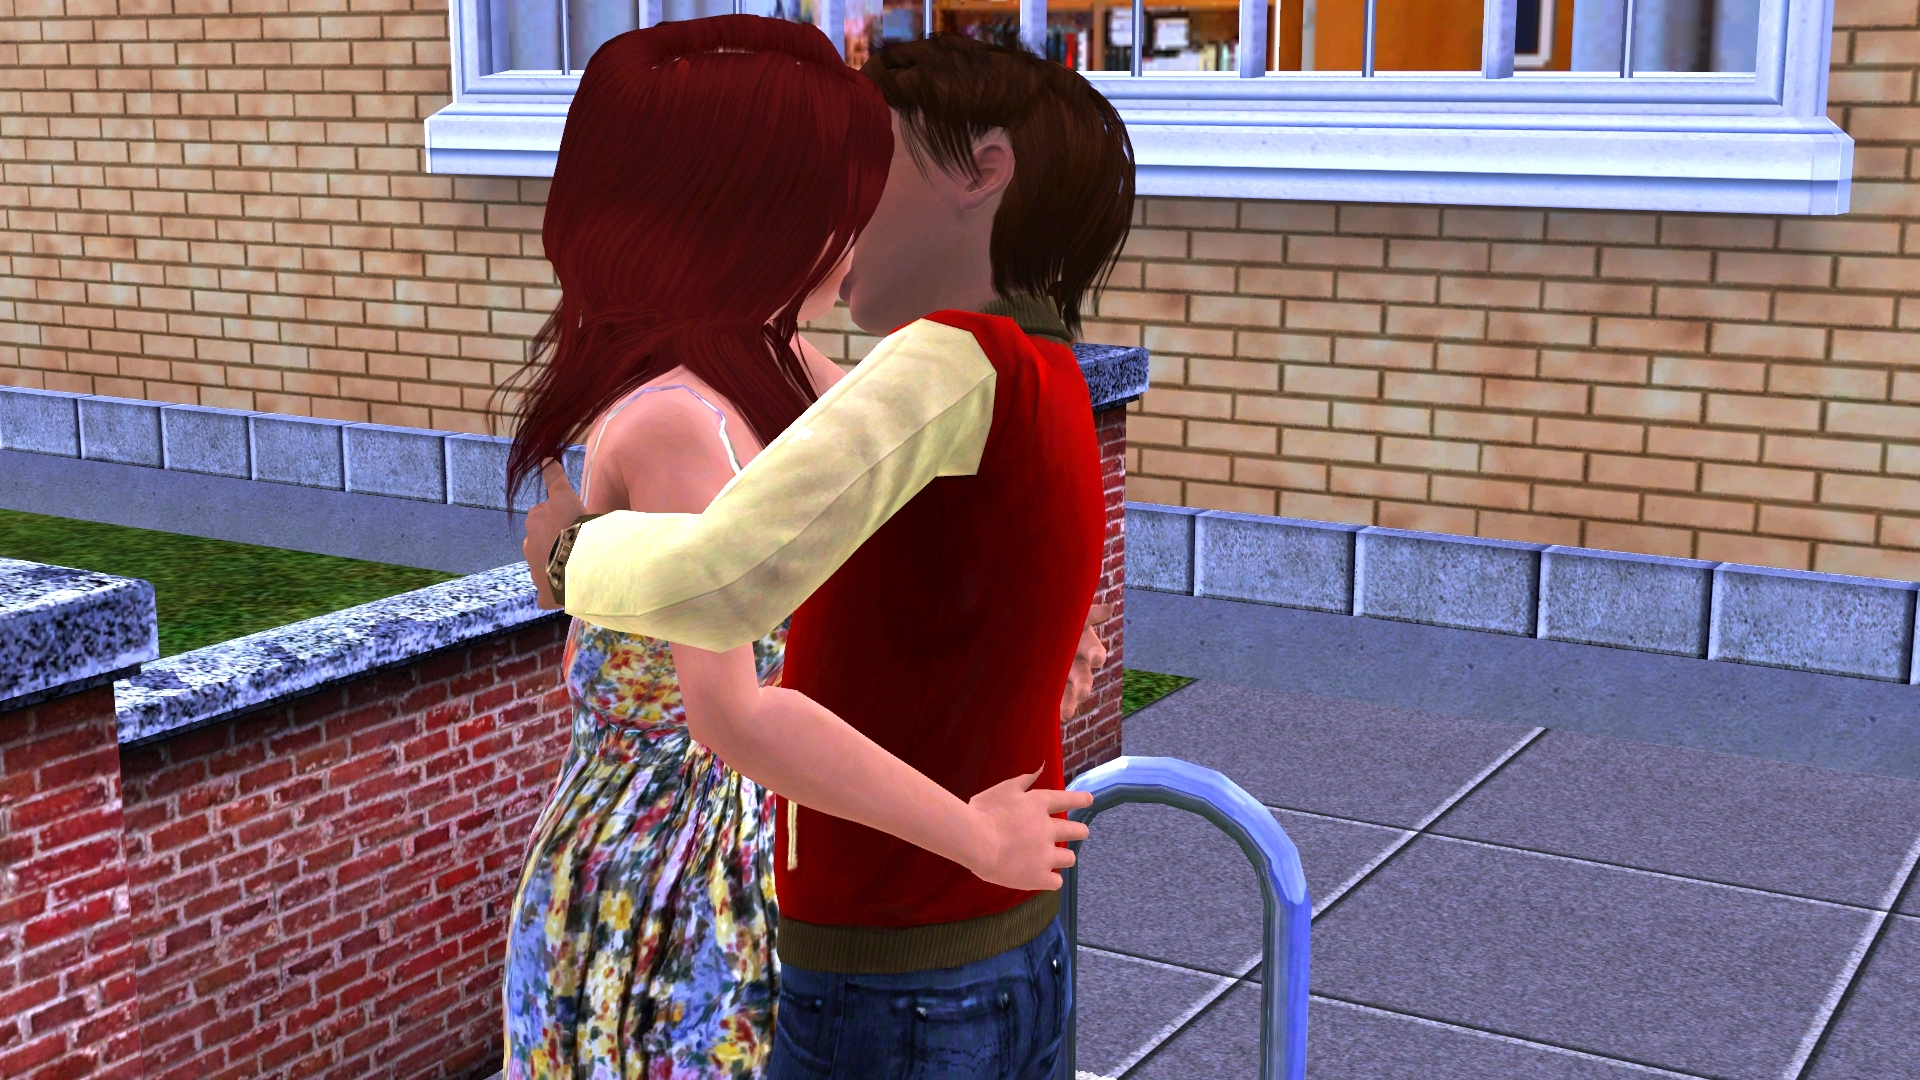 raphine dating Stuff christians like taking a chaperone with you on a date there are some christian colleges that require you to take a school appointed chaperone with you if.